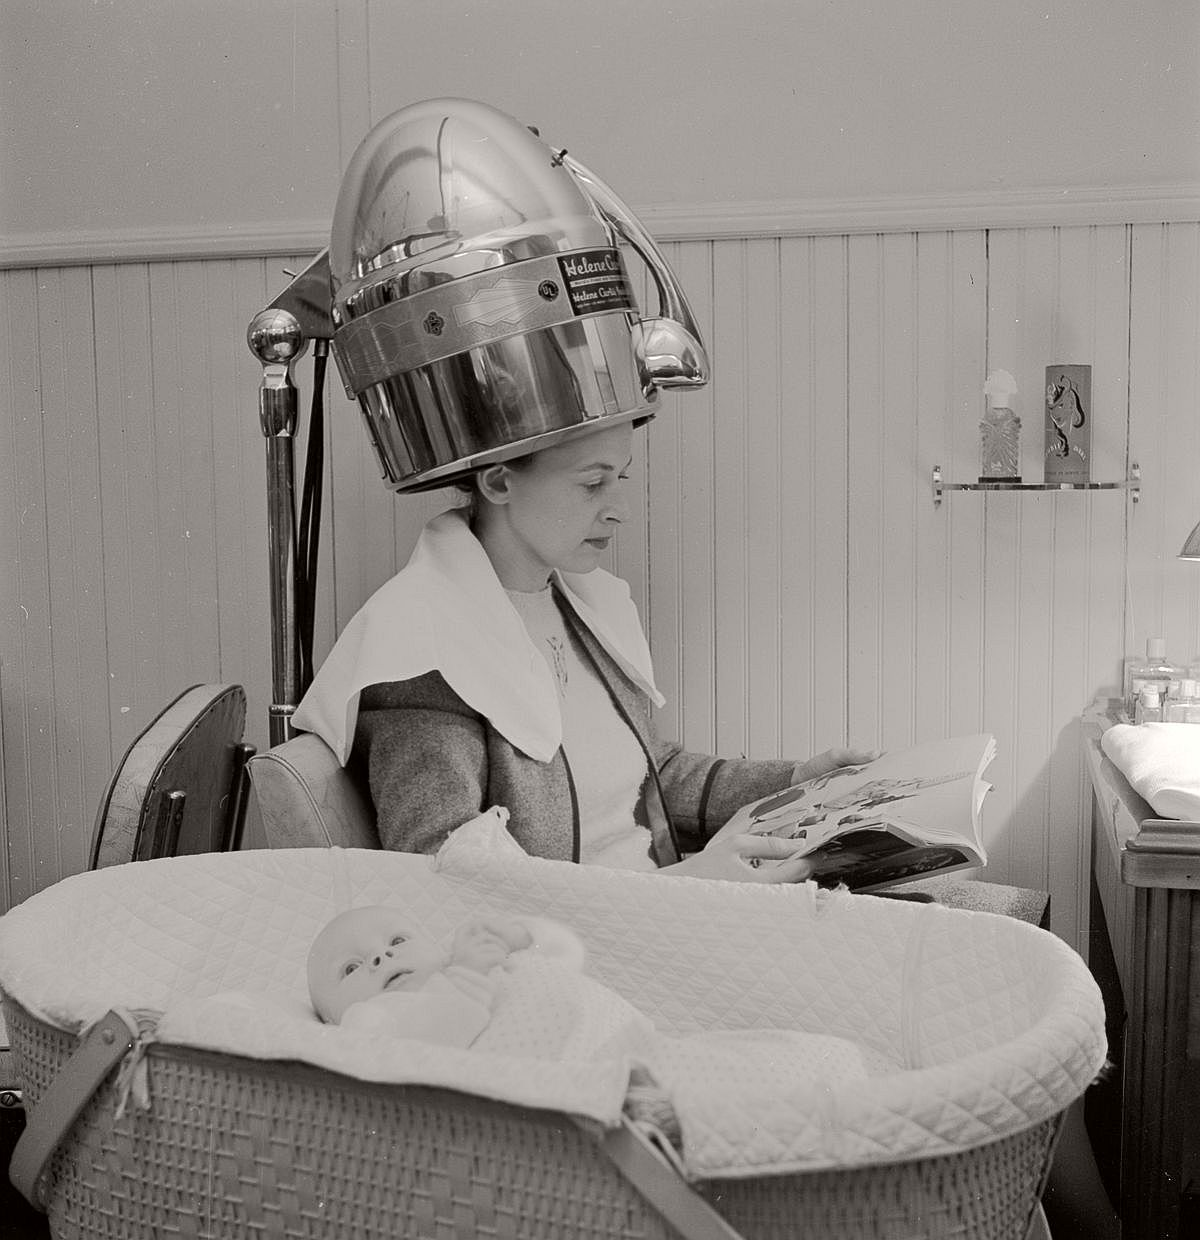 vintage-beauty-salons-and-early-hair-dryers-1920s-1940s-05